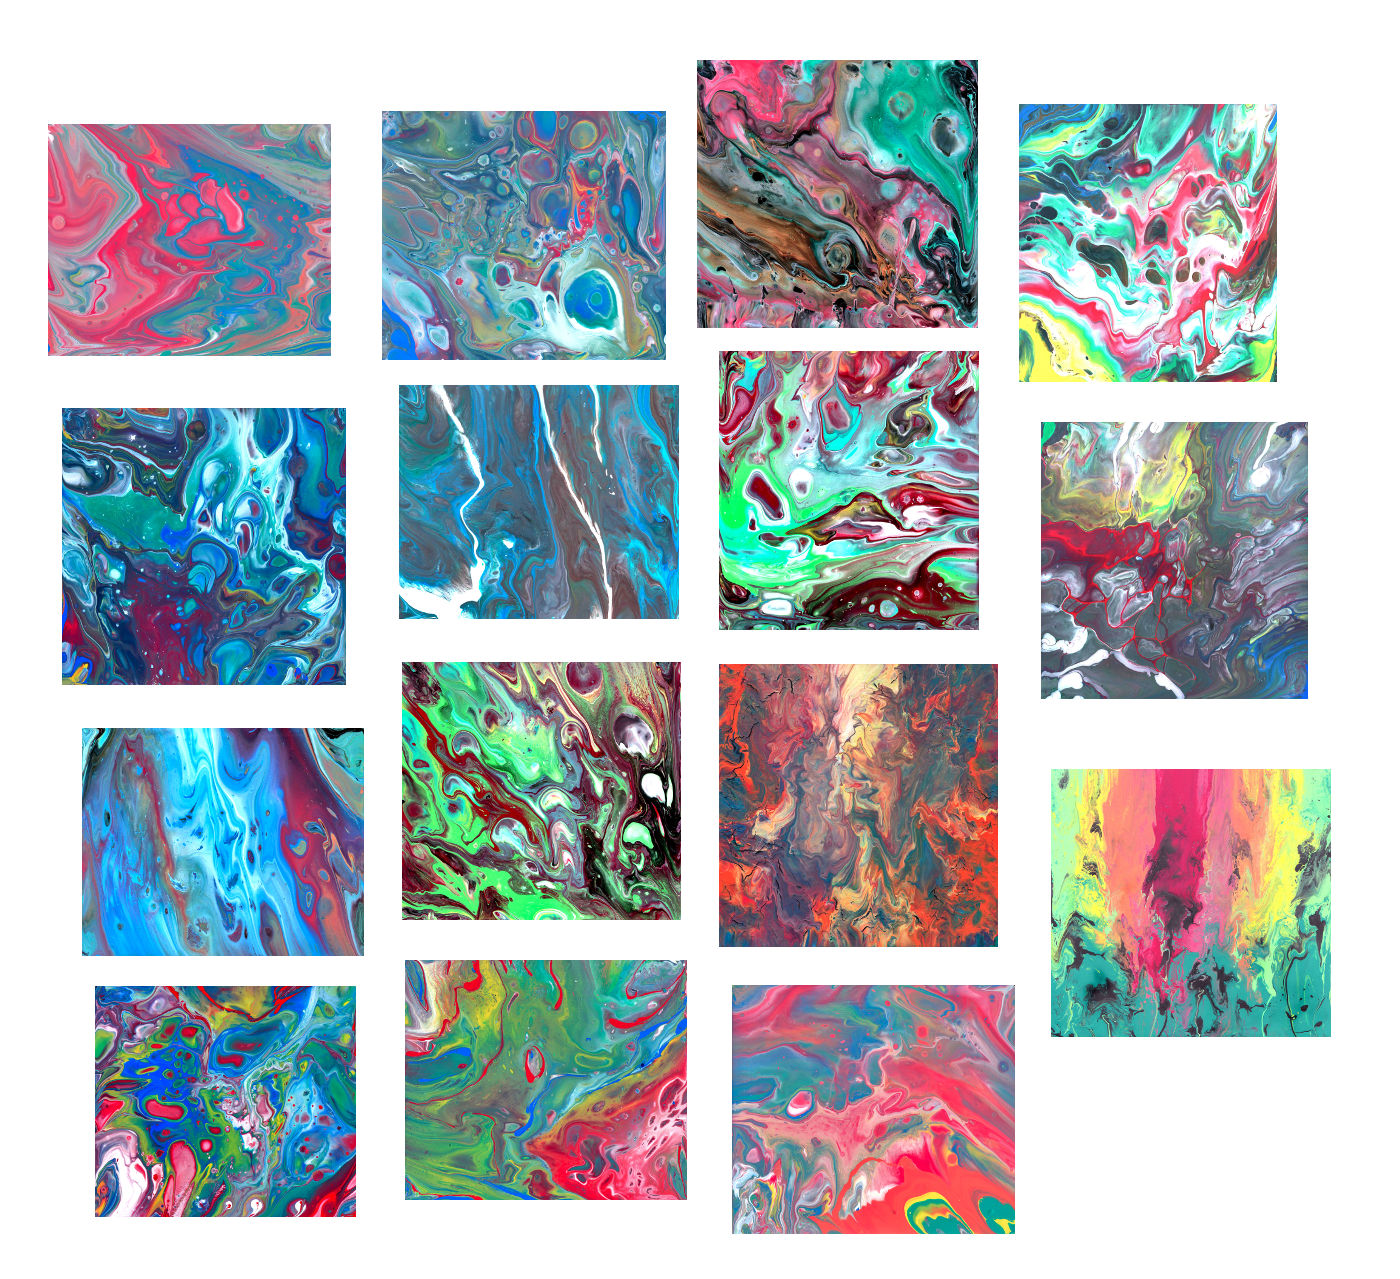 15-abstract-marble-marbling-backgrounds-vol-2-cover.jpg